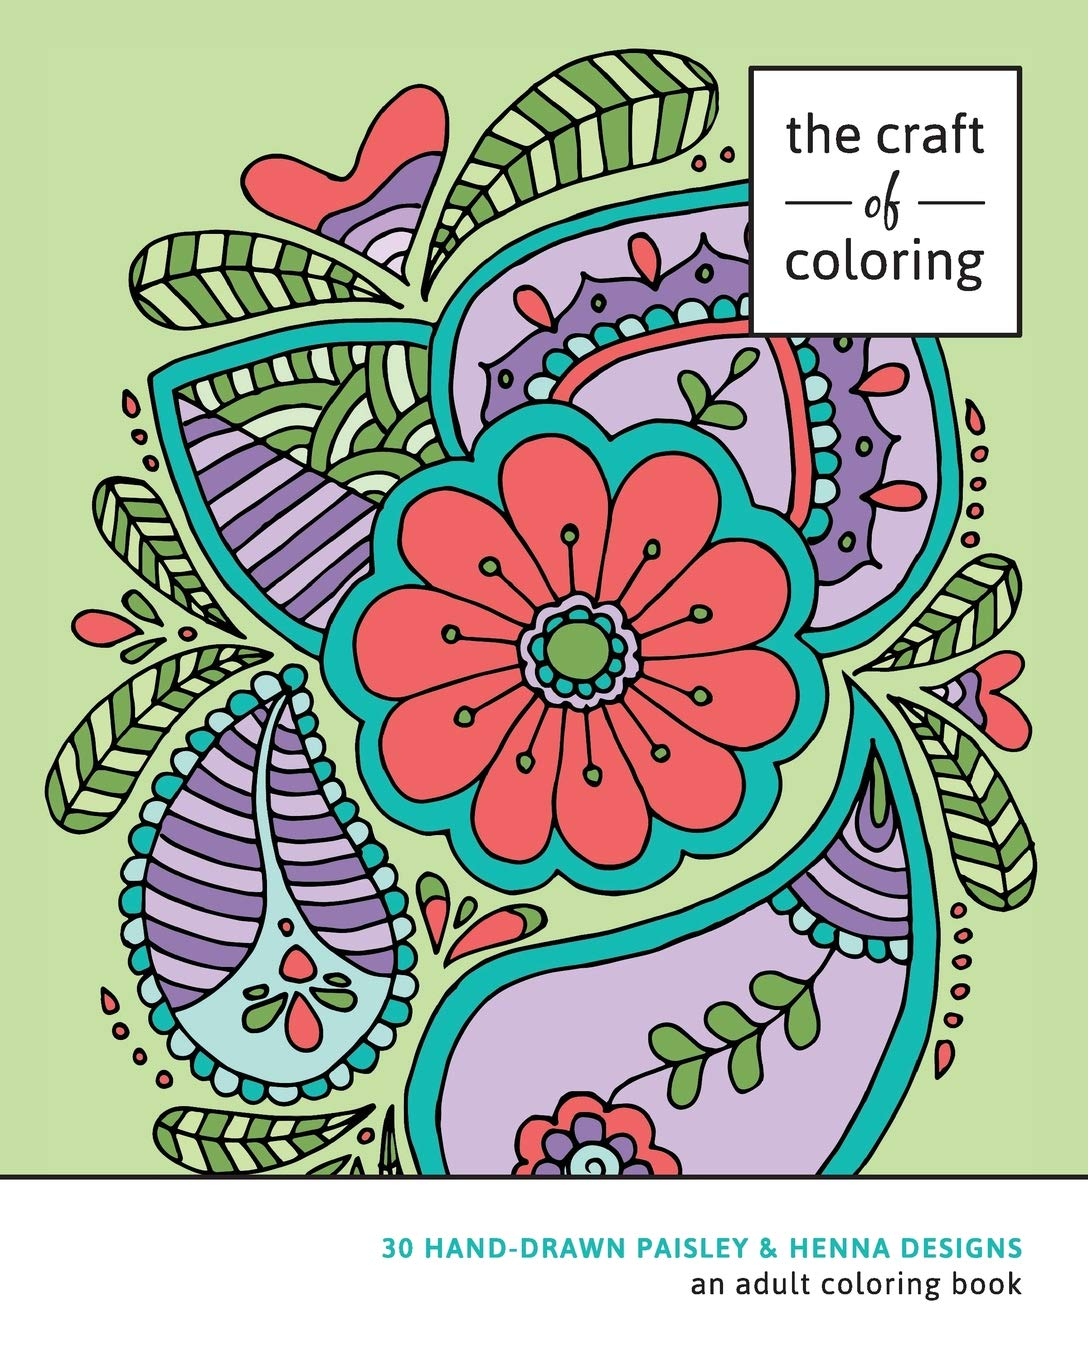 The Craft Of Coloring 30 Paisley And Henna Designs An Adult Coloring Book Relaxing And Stress Relieving Adult Coloring Books The Craft Of Coloring 9781518875977 Amazon Com Books